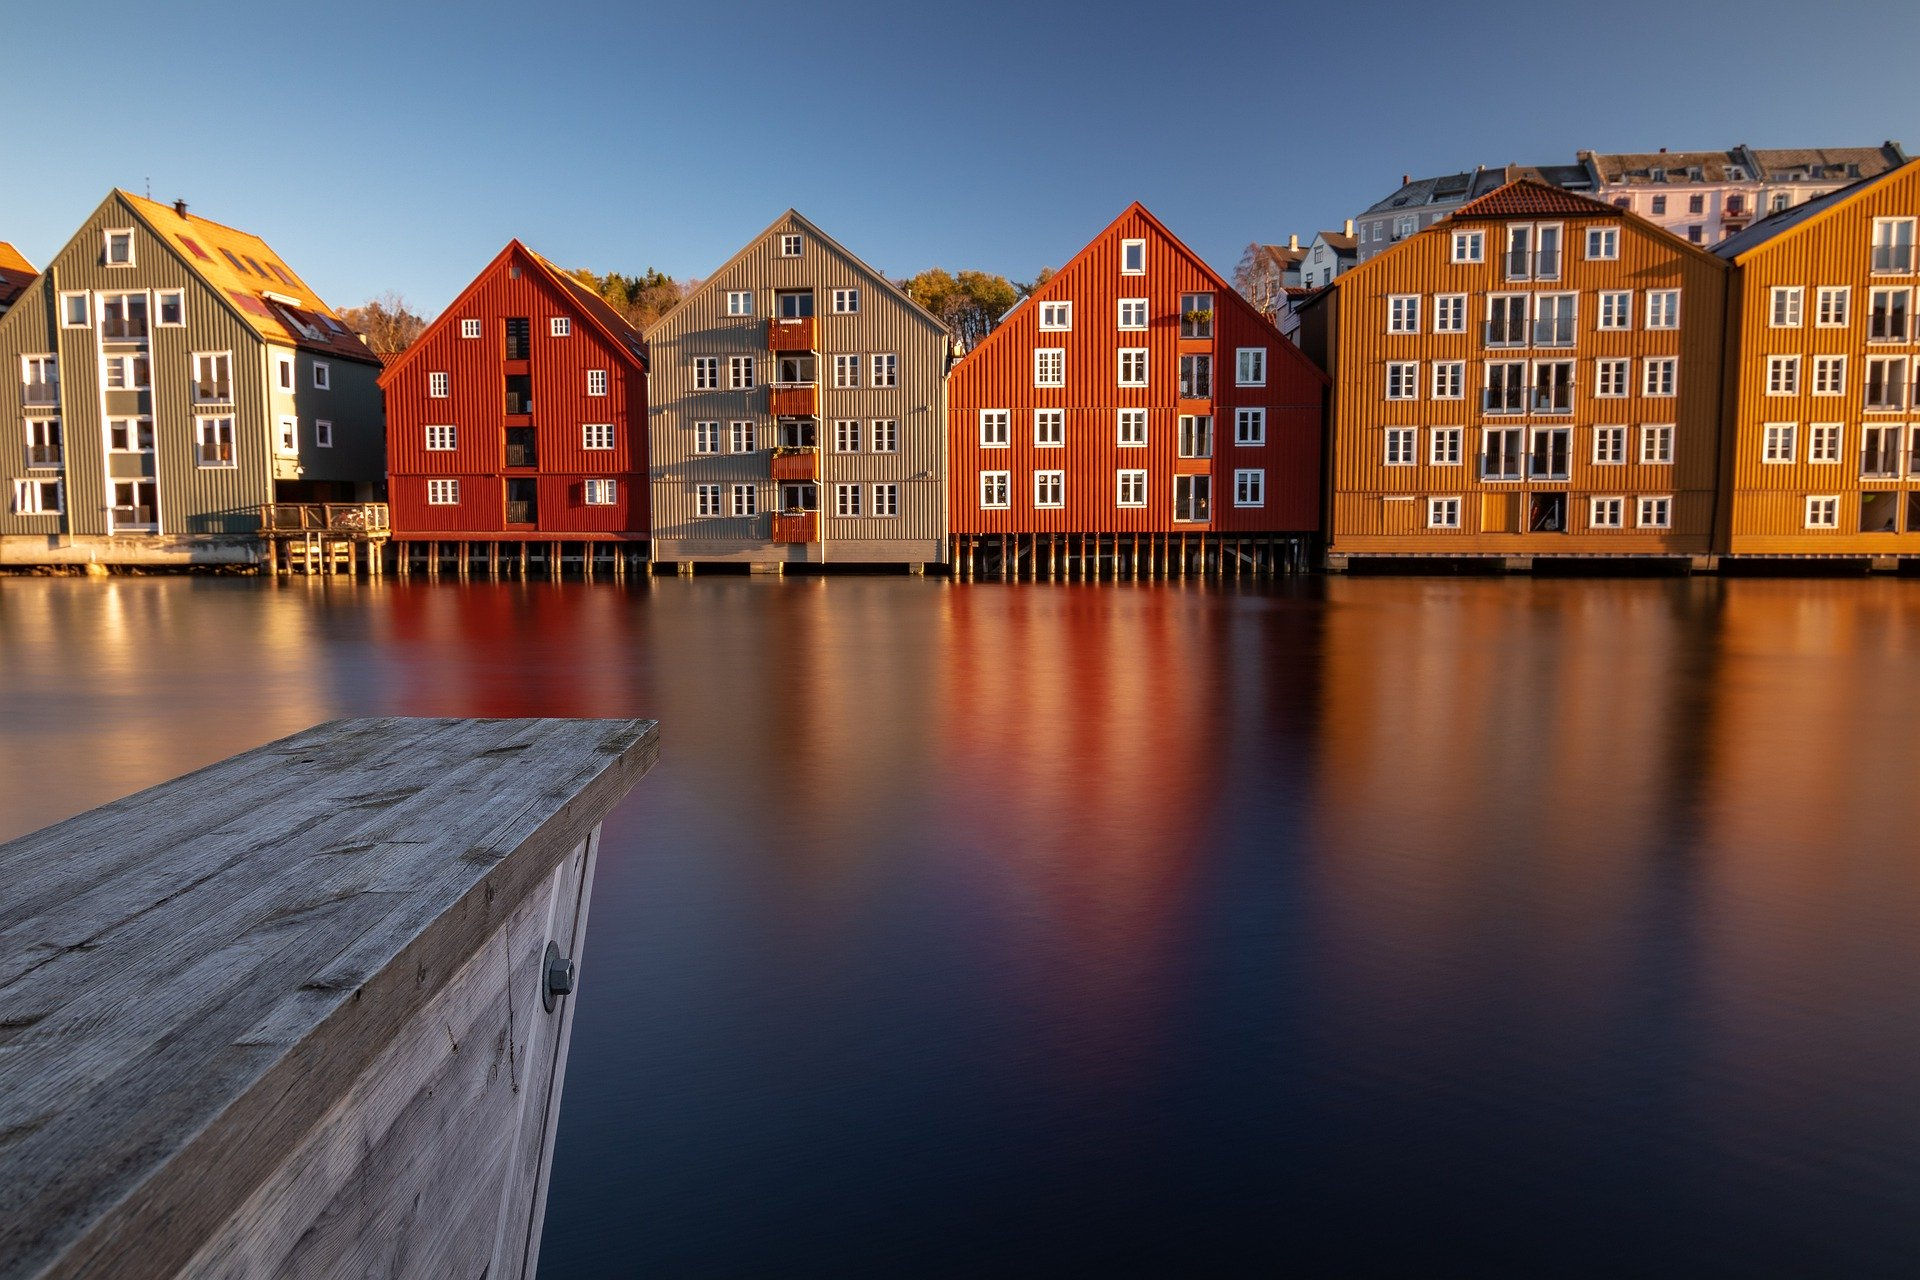 Colorful houses on a body of water